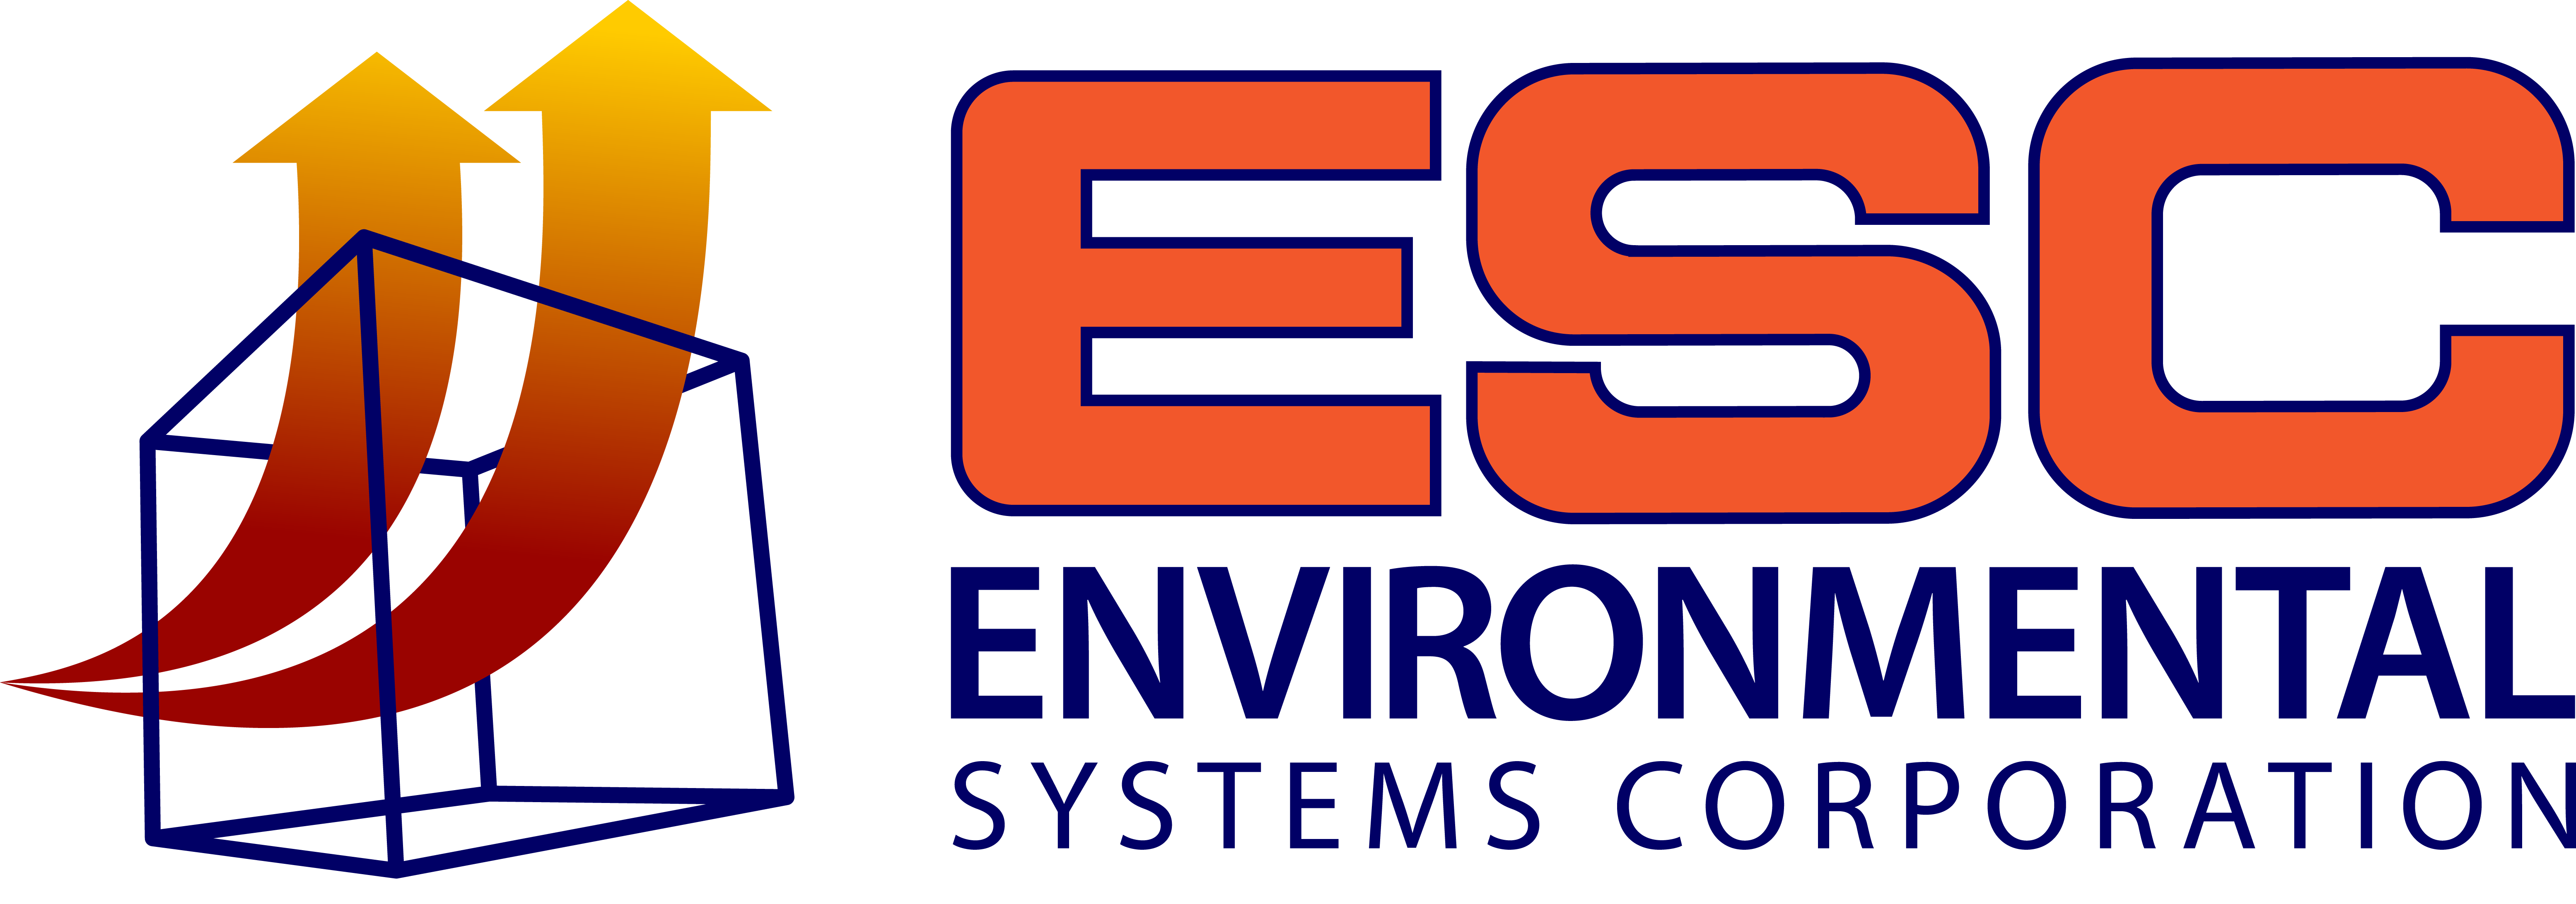 Environmental Systems Corp